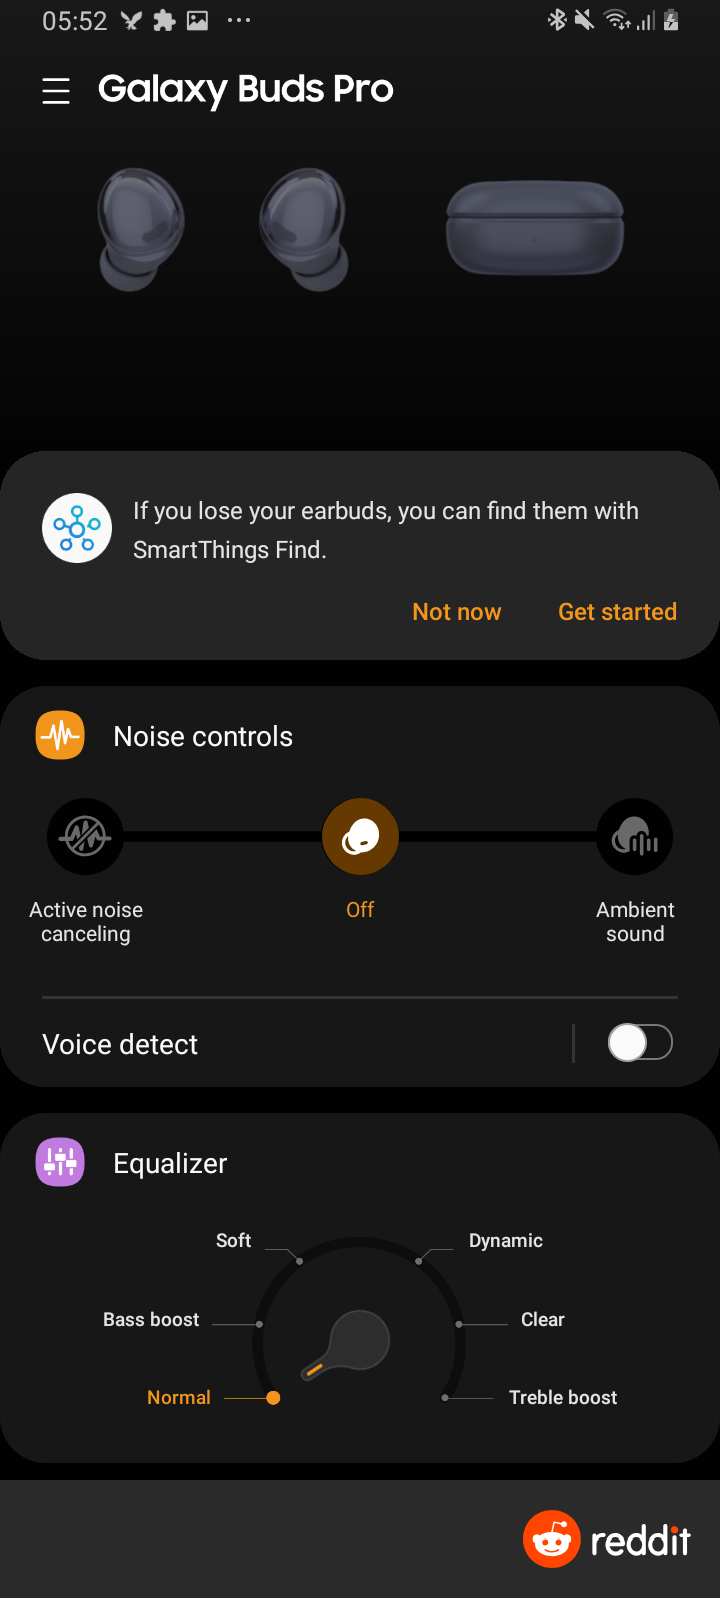 Samsung Galaxy Buds Pro features in App